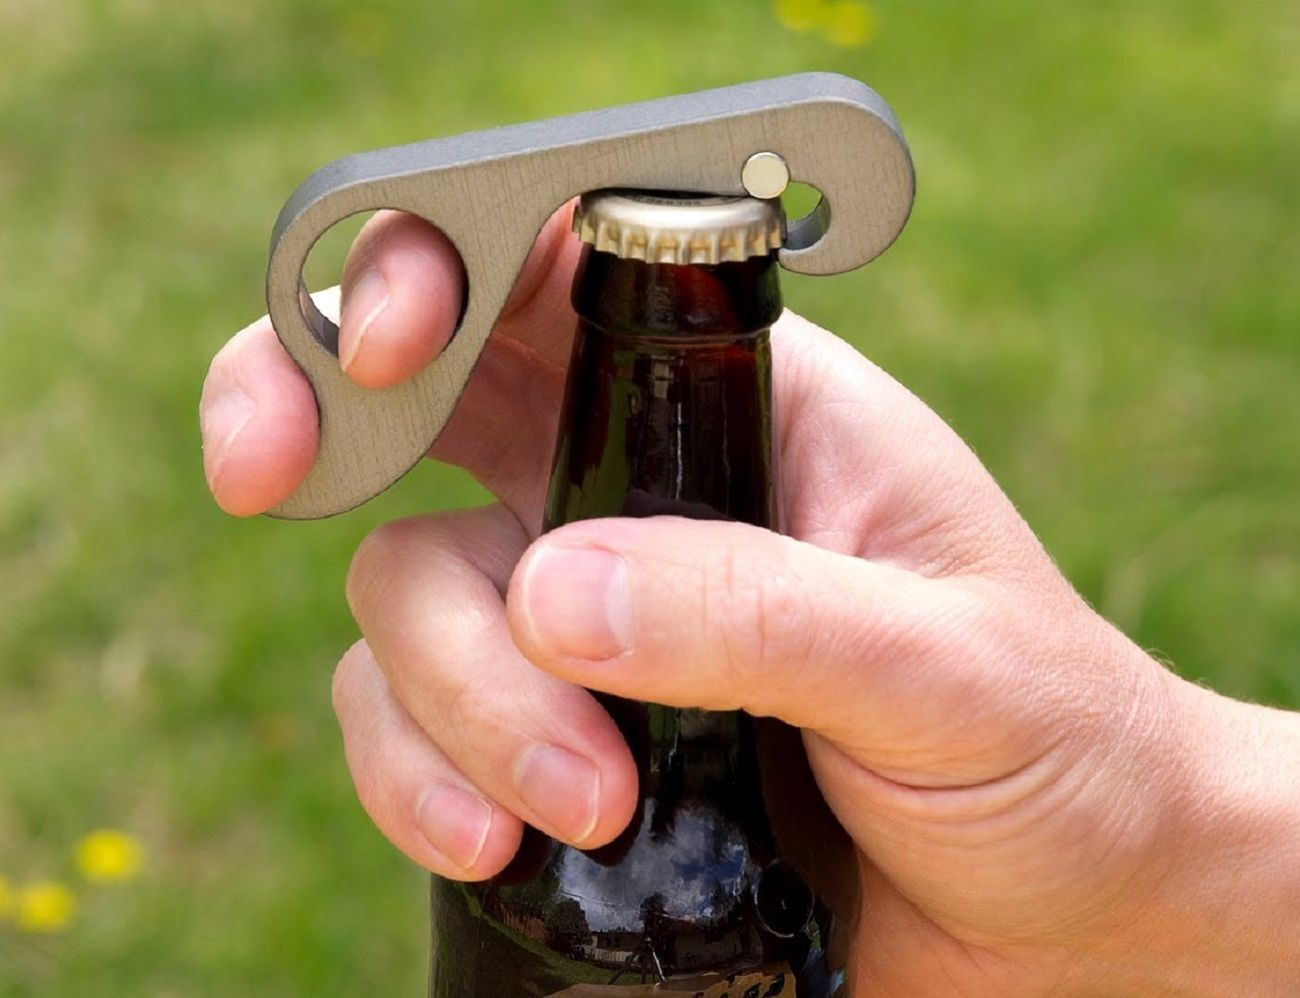 Grab+Opener%3A+The+One-Handed+Bottle+Opener